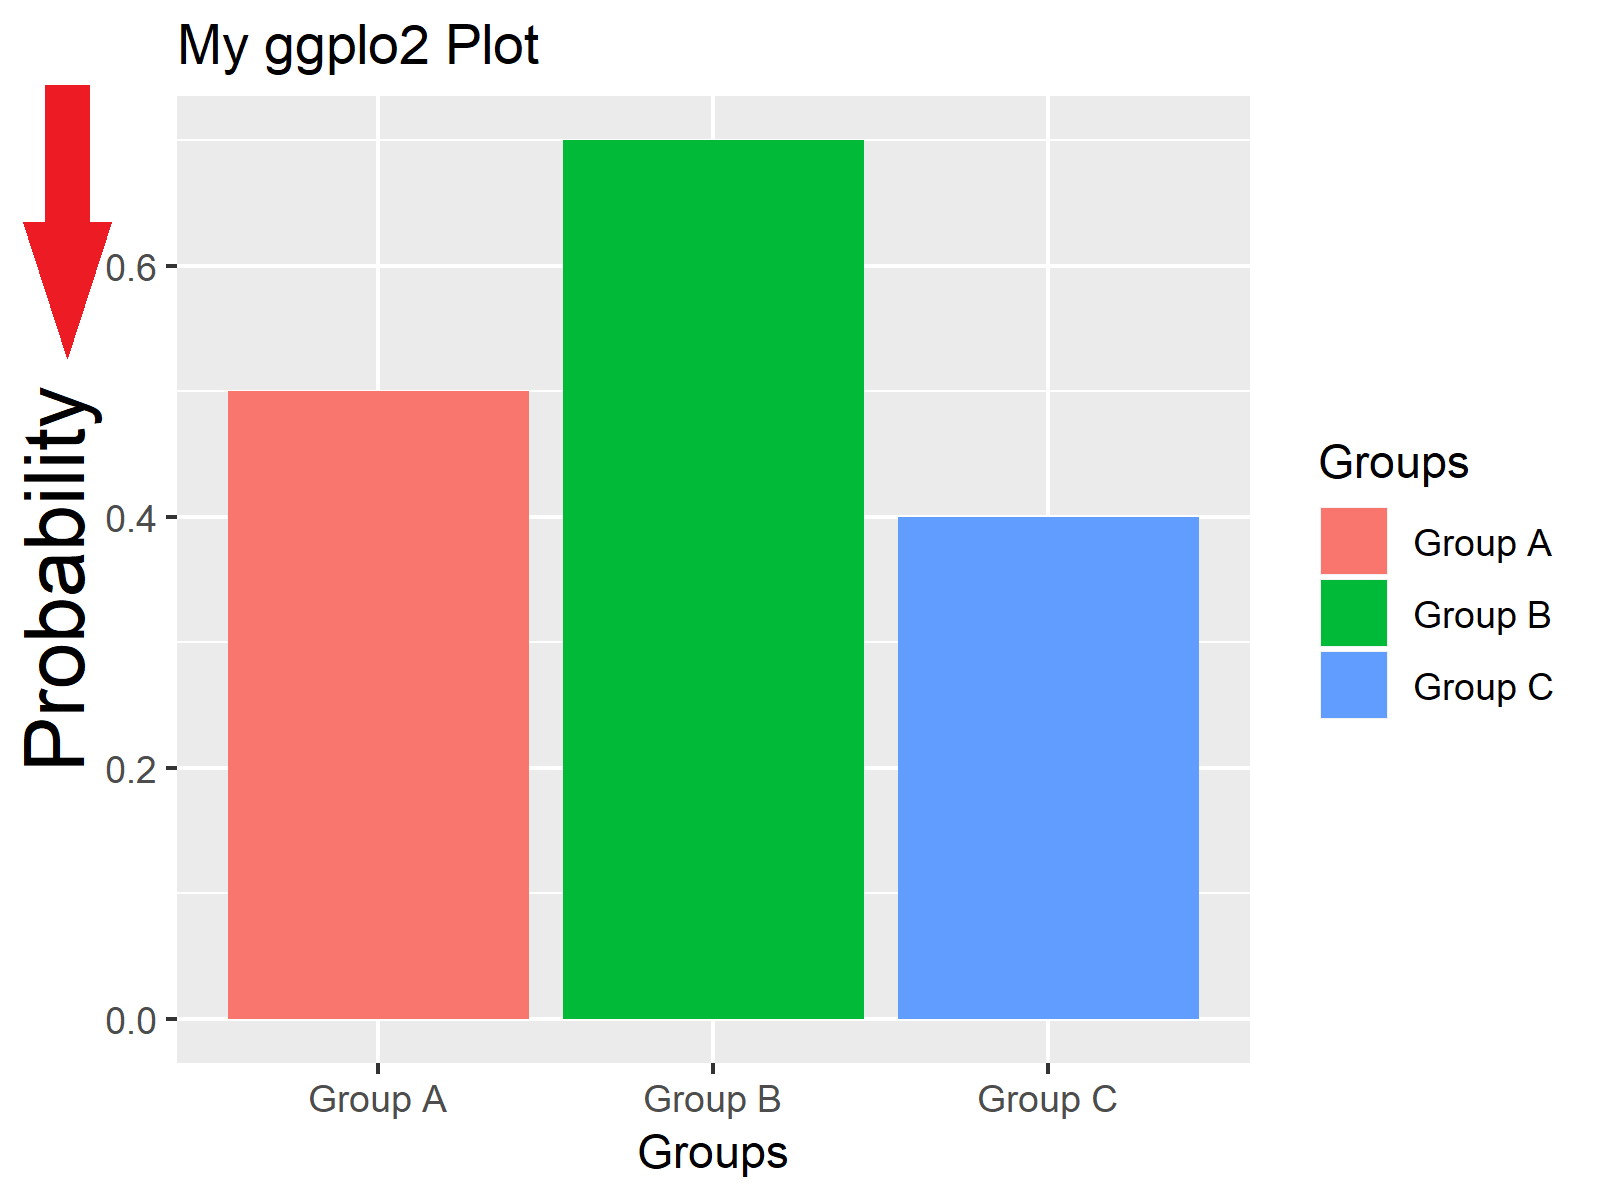 r ggplot2 plot font size of y axis title